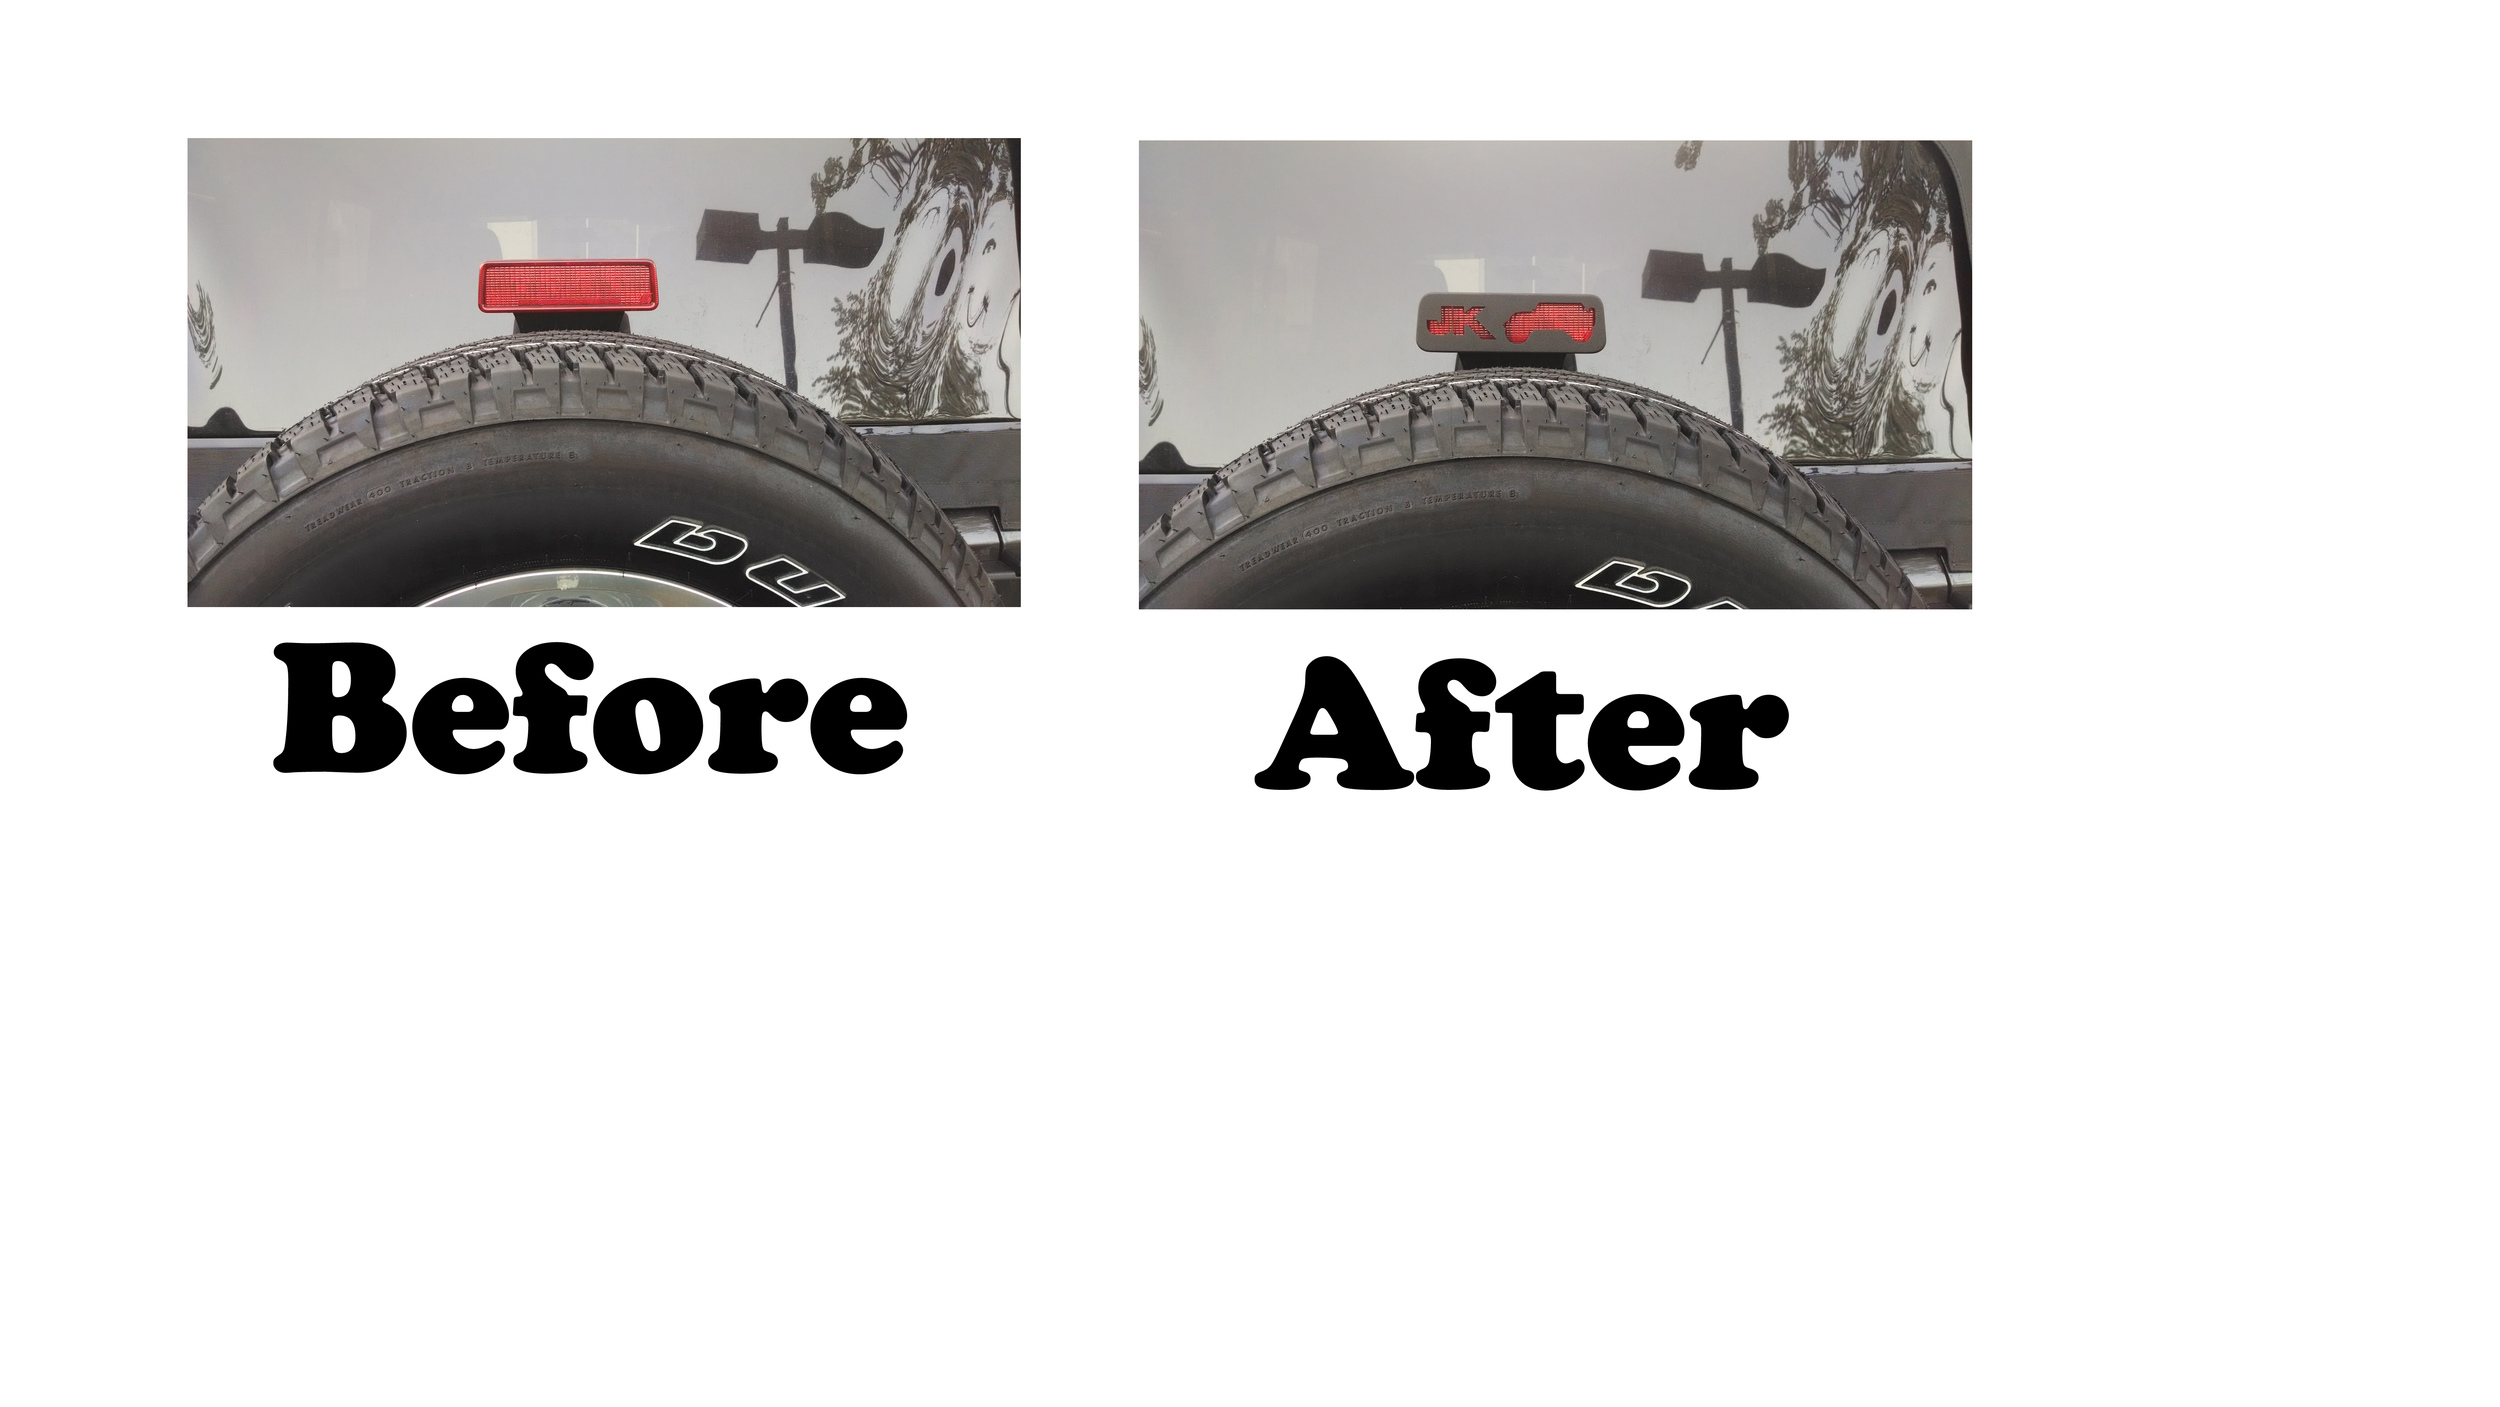 Before After (2).jpg